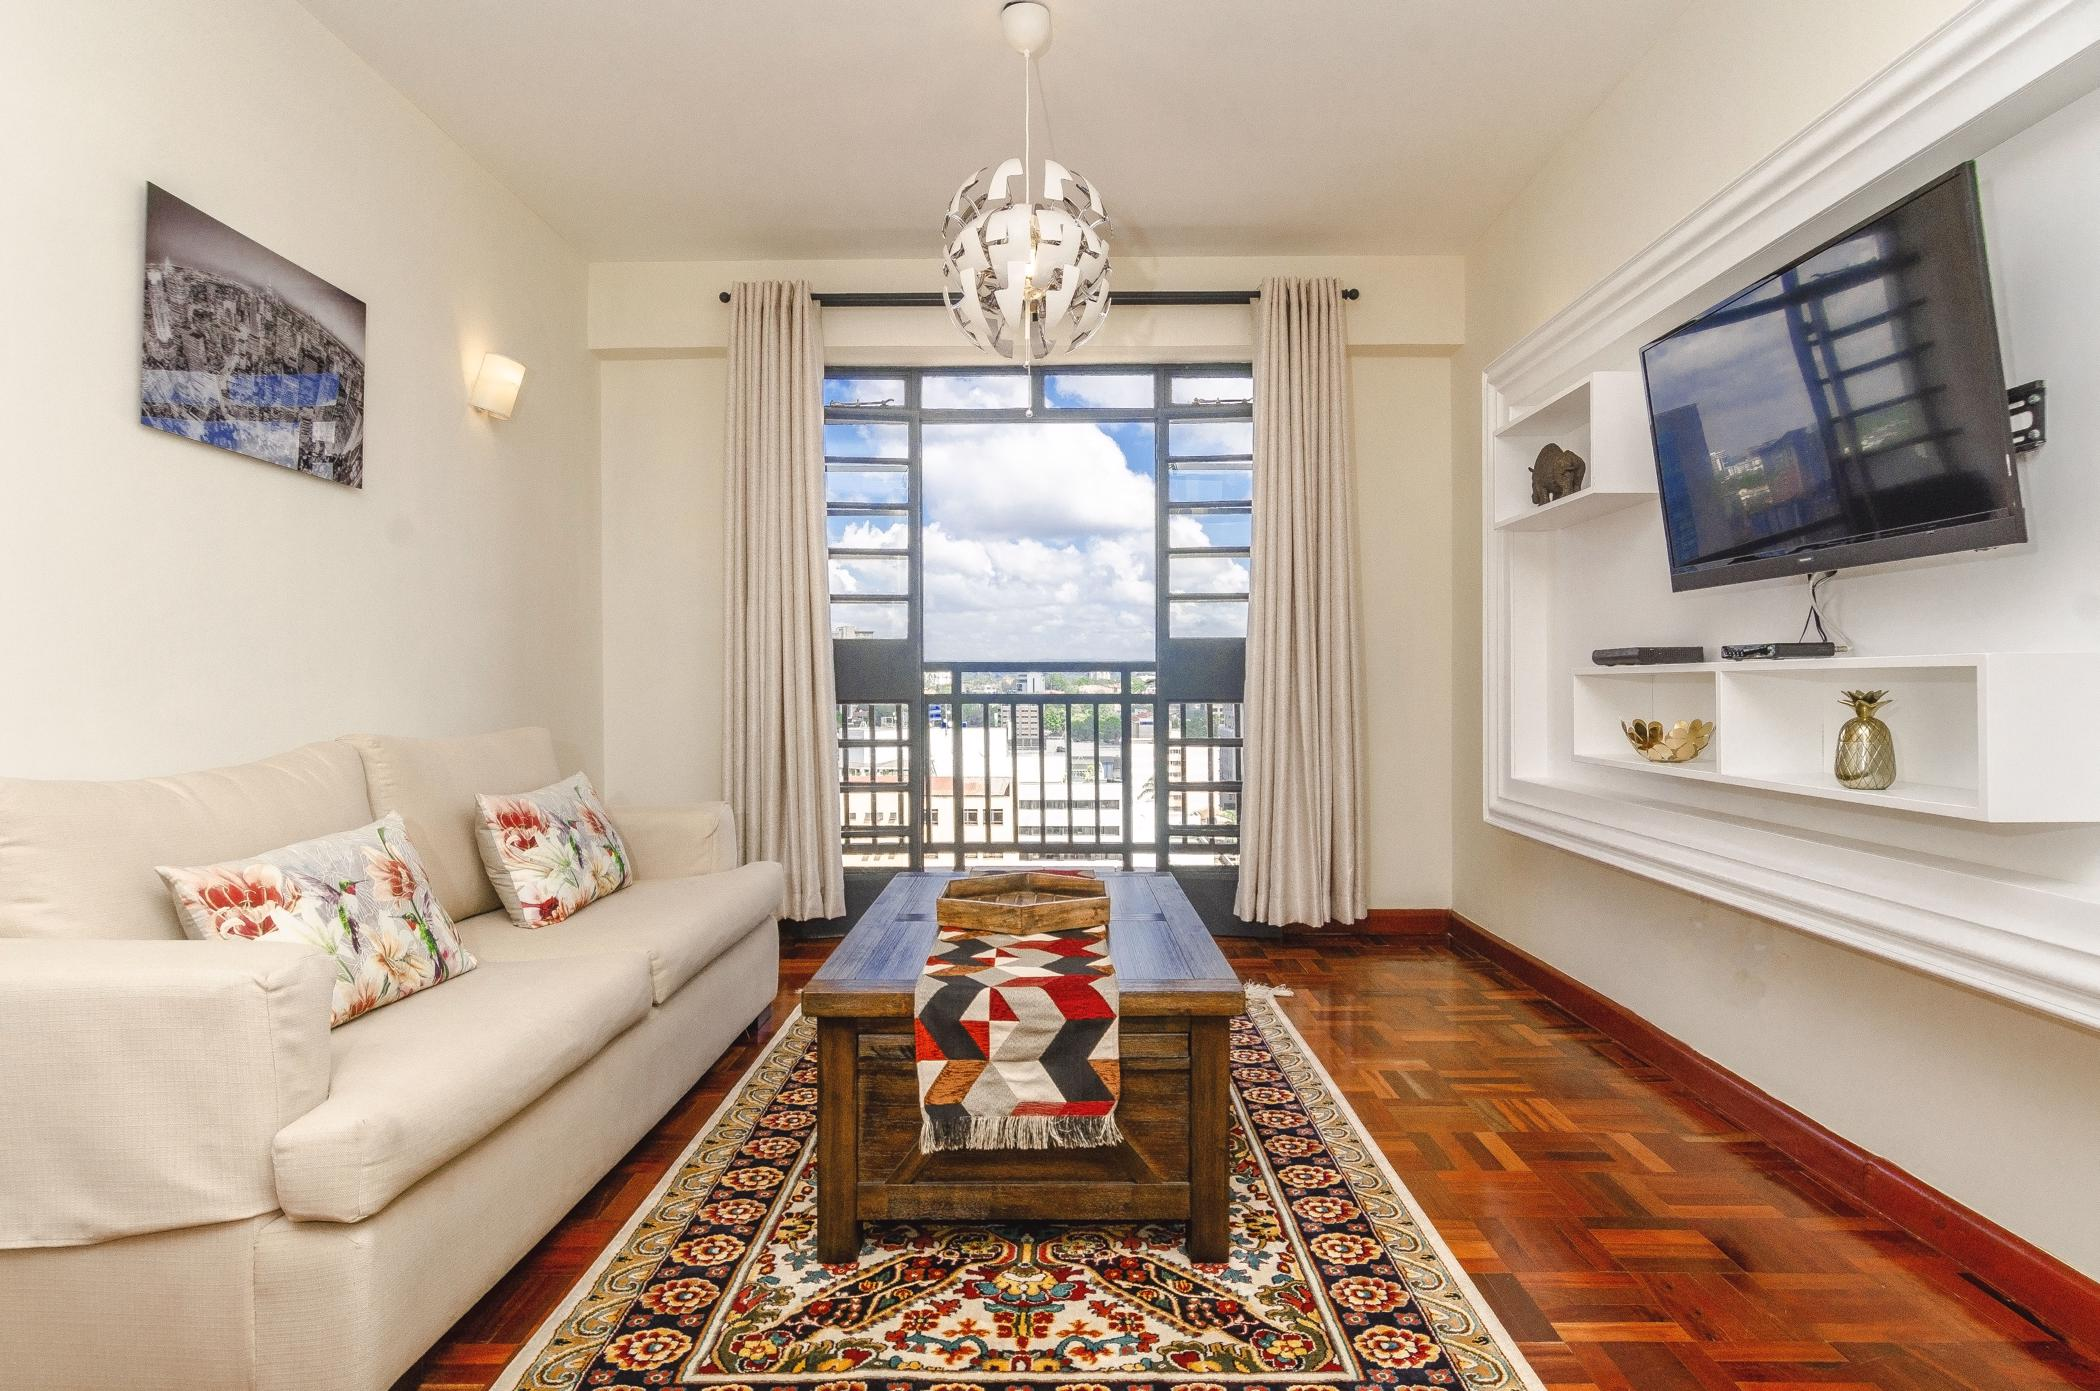 Apartments For Rent Houses In Westlands Nairobi Pam Golding Properties